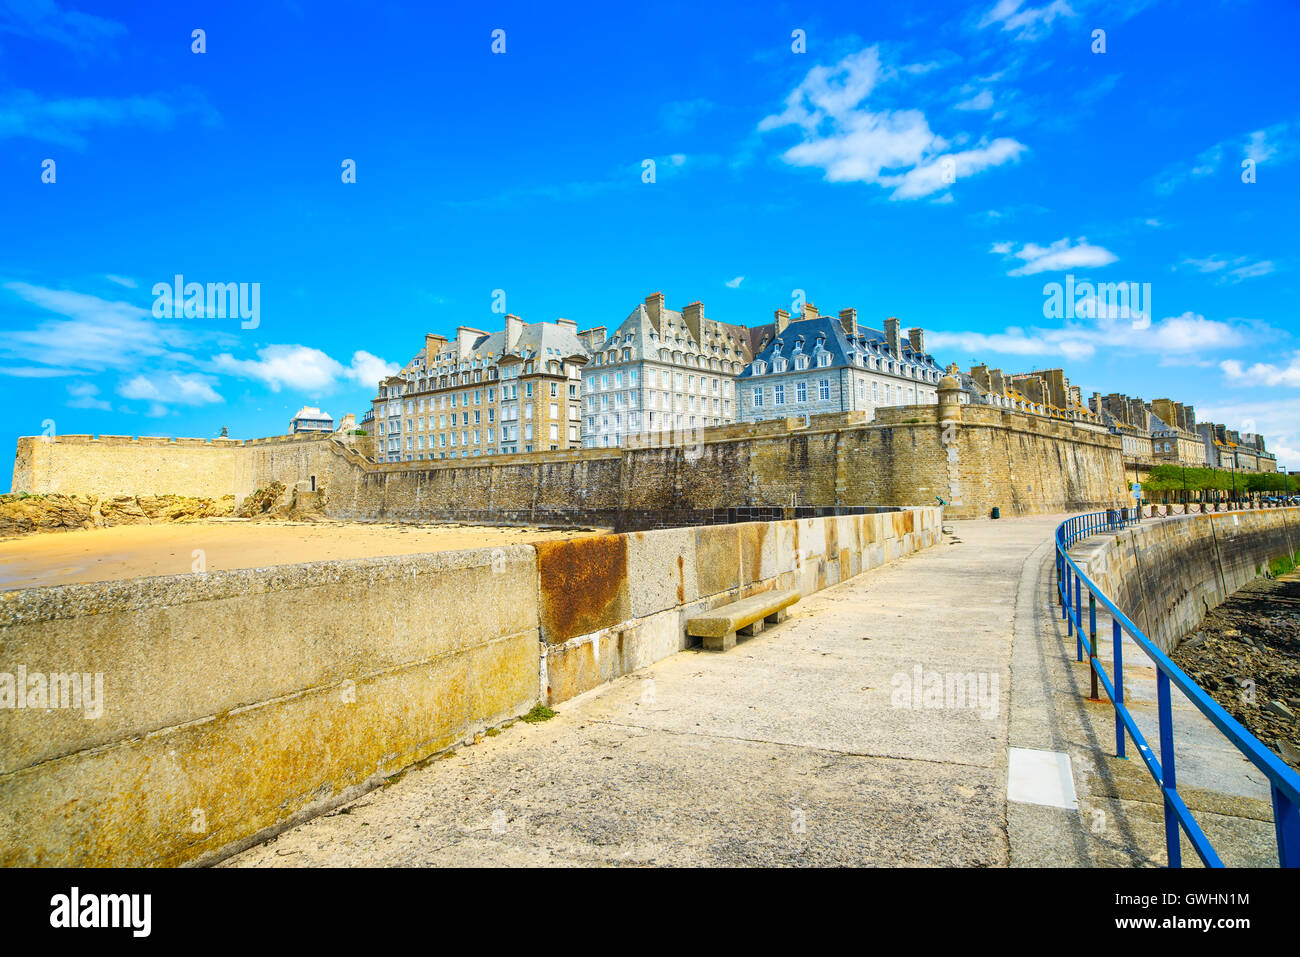 Saint Malo city walls and beach. Brittany, France, Europe. - Stock Image